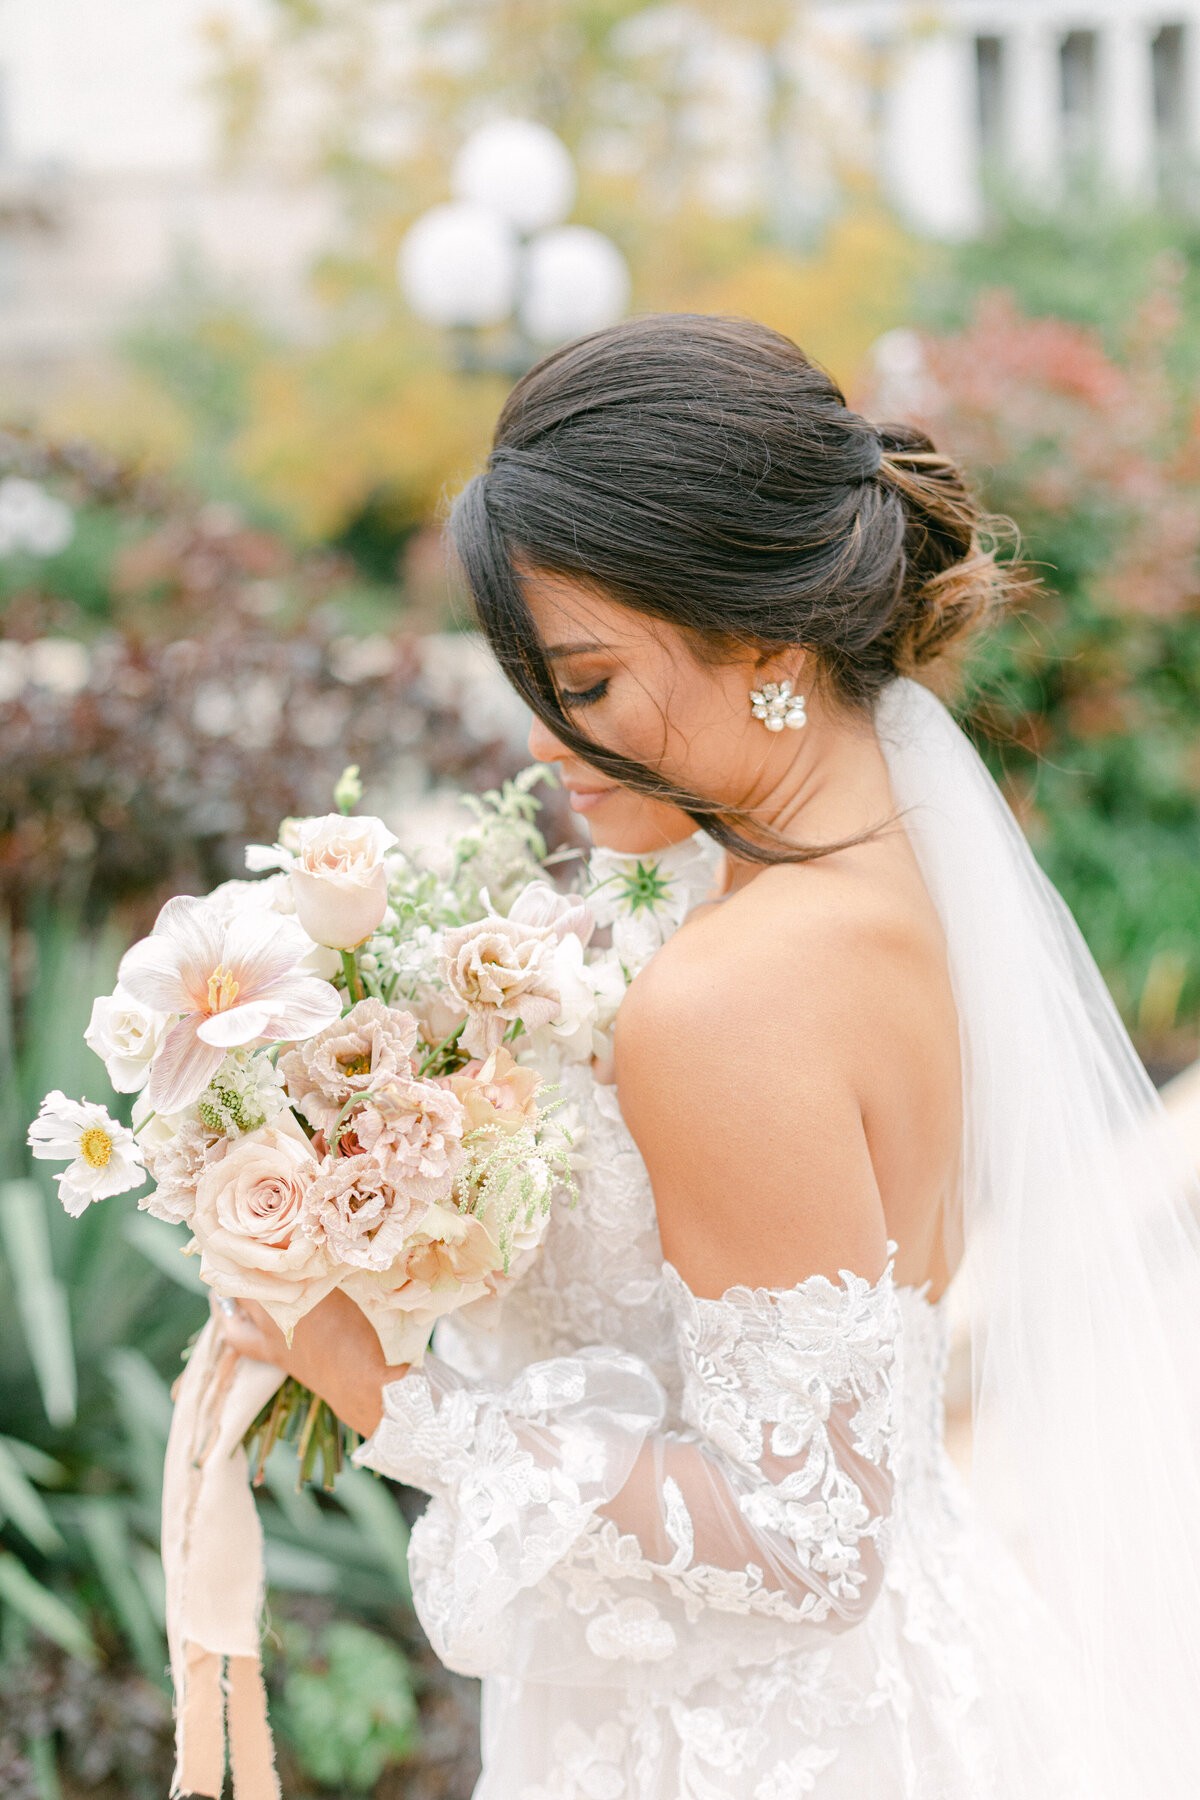 bride and bouquet at washington dc wedding near botanical gardens